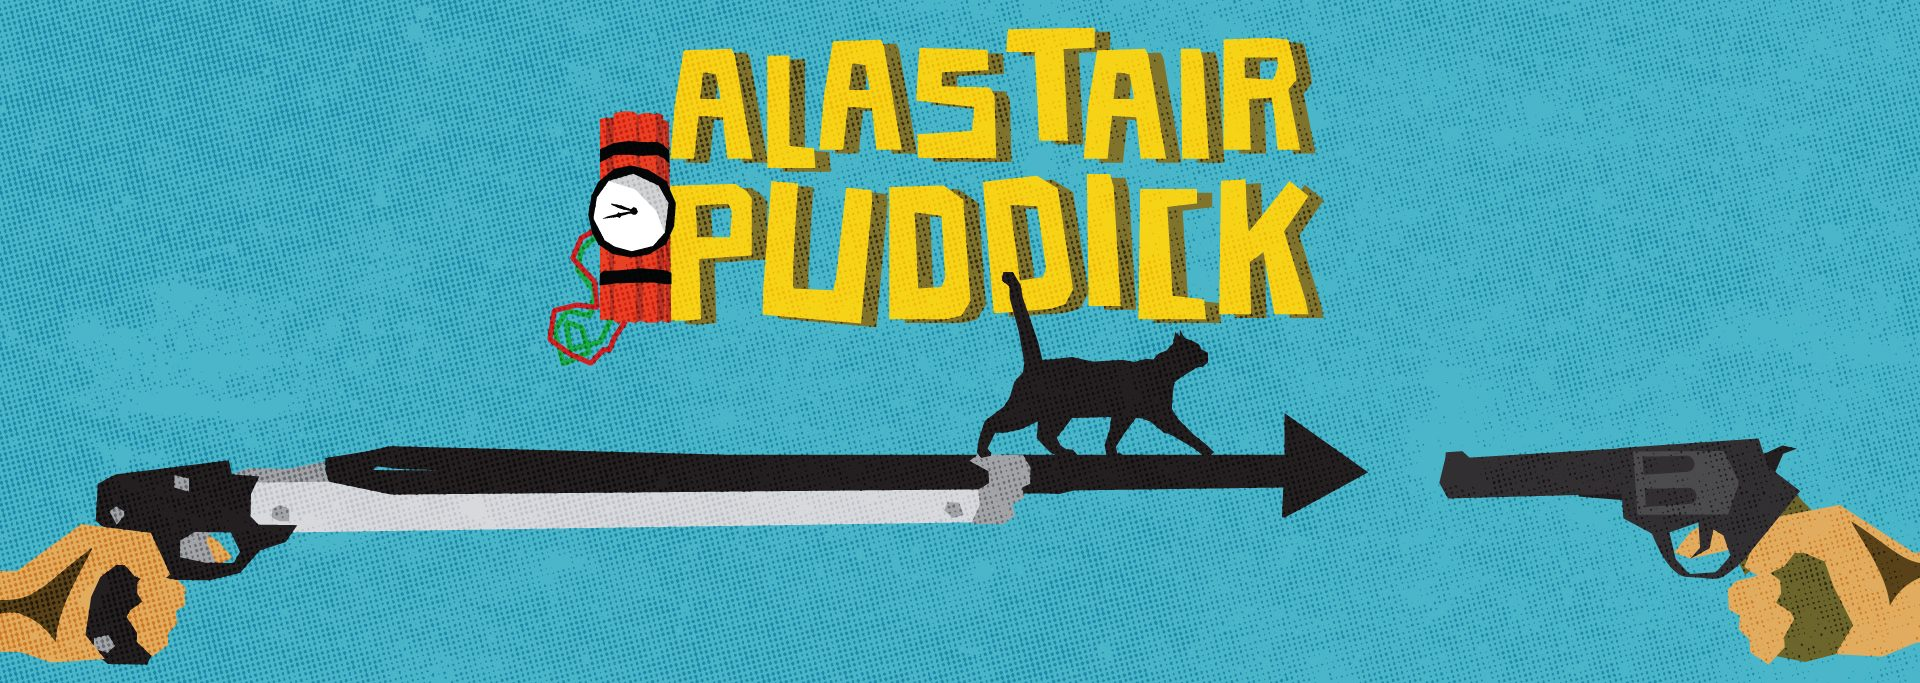 Alastair Puddick